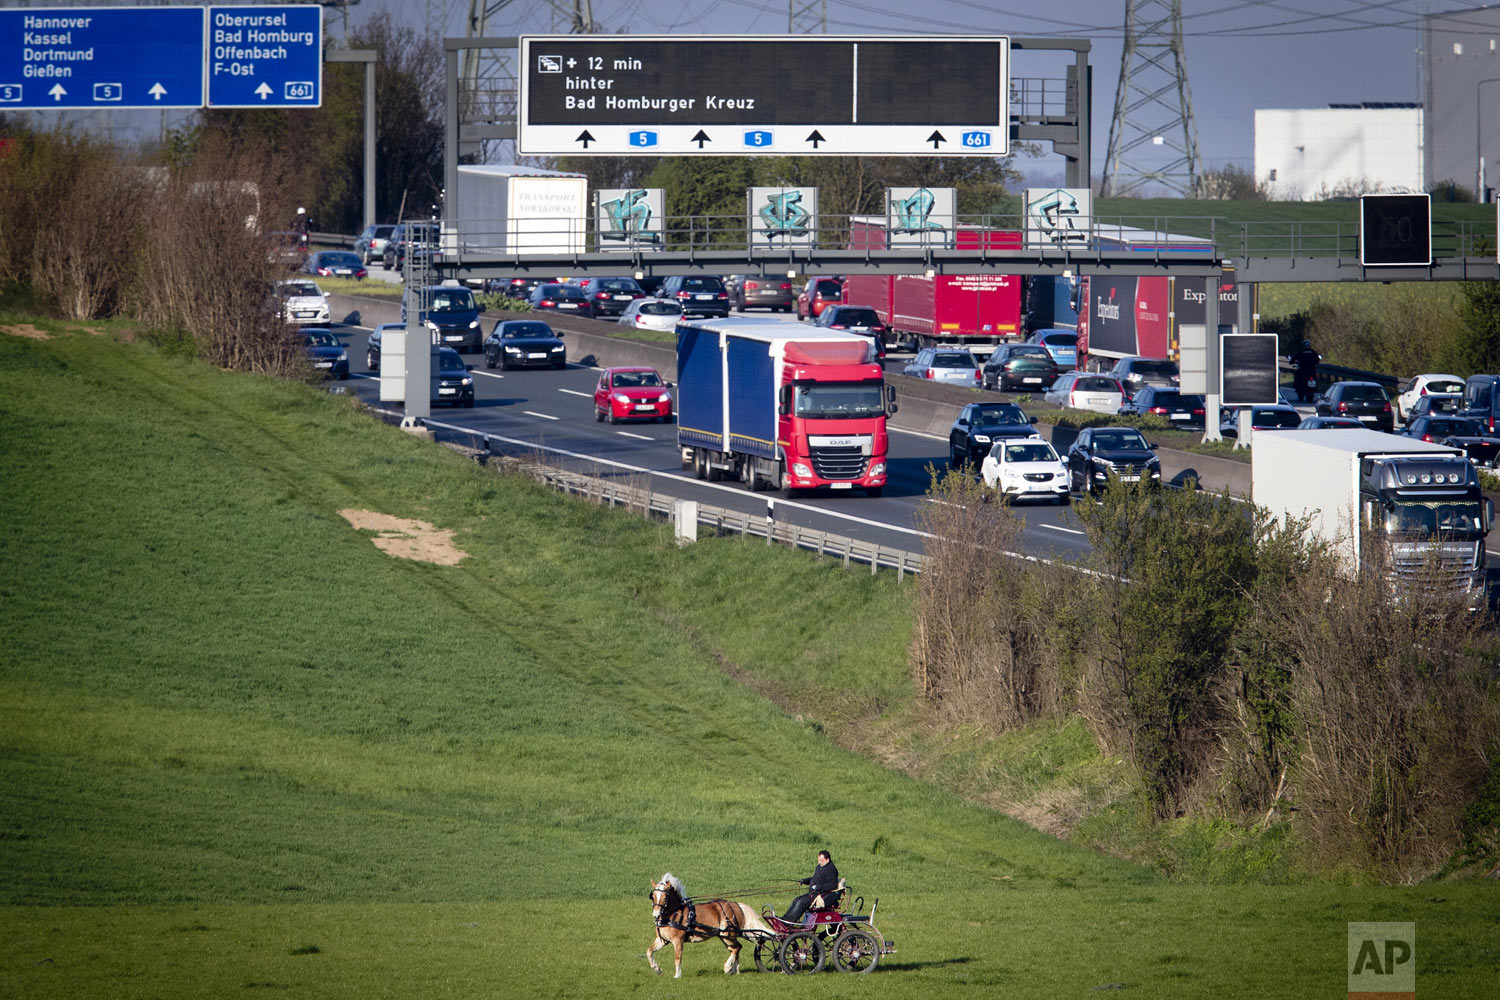 A man rides his horse and carriage over a meadow near a highway in Frankfurt, Germany, on Thursday, April 11, 2019. (AP Photo/Michael Probst)